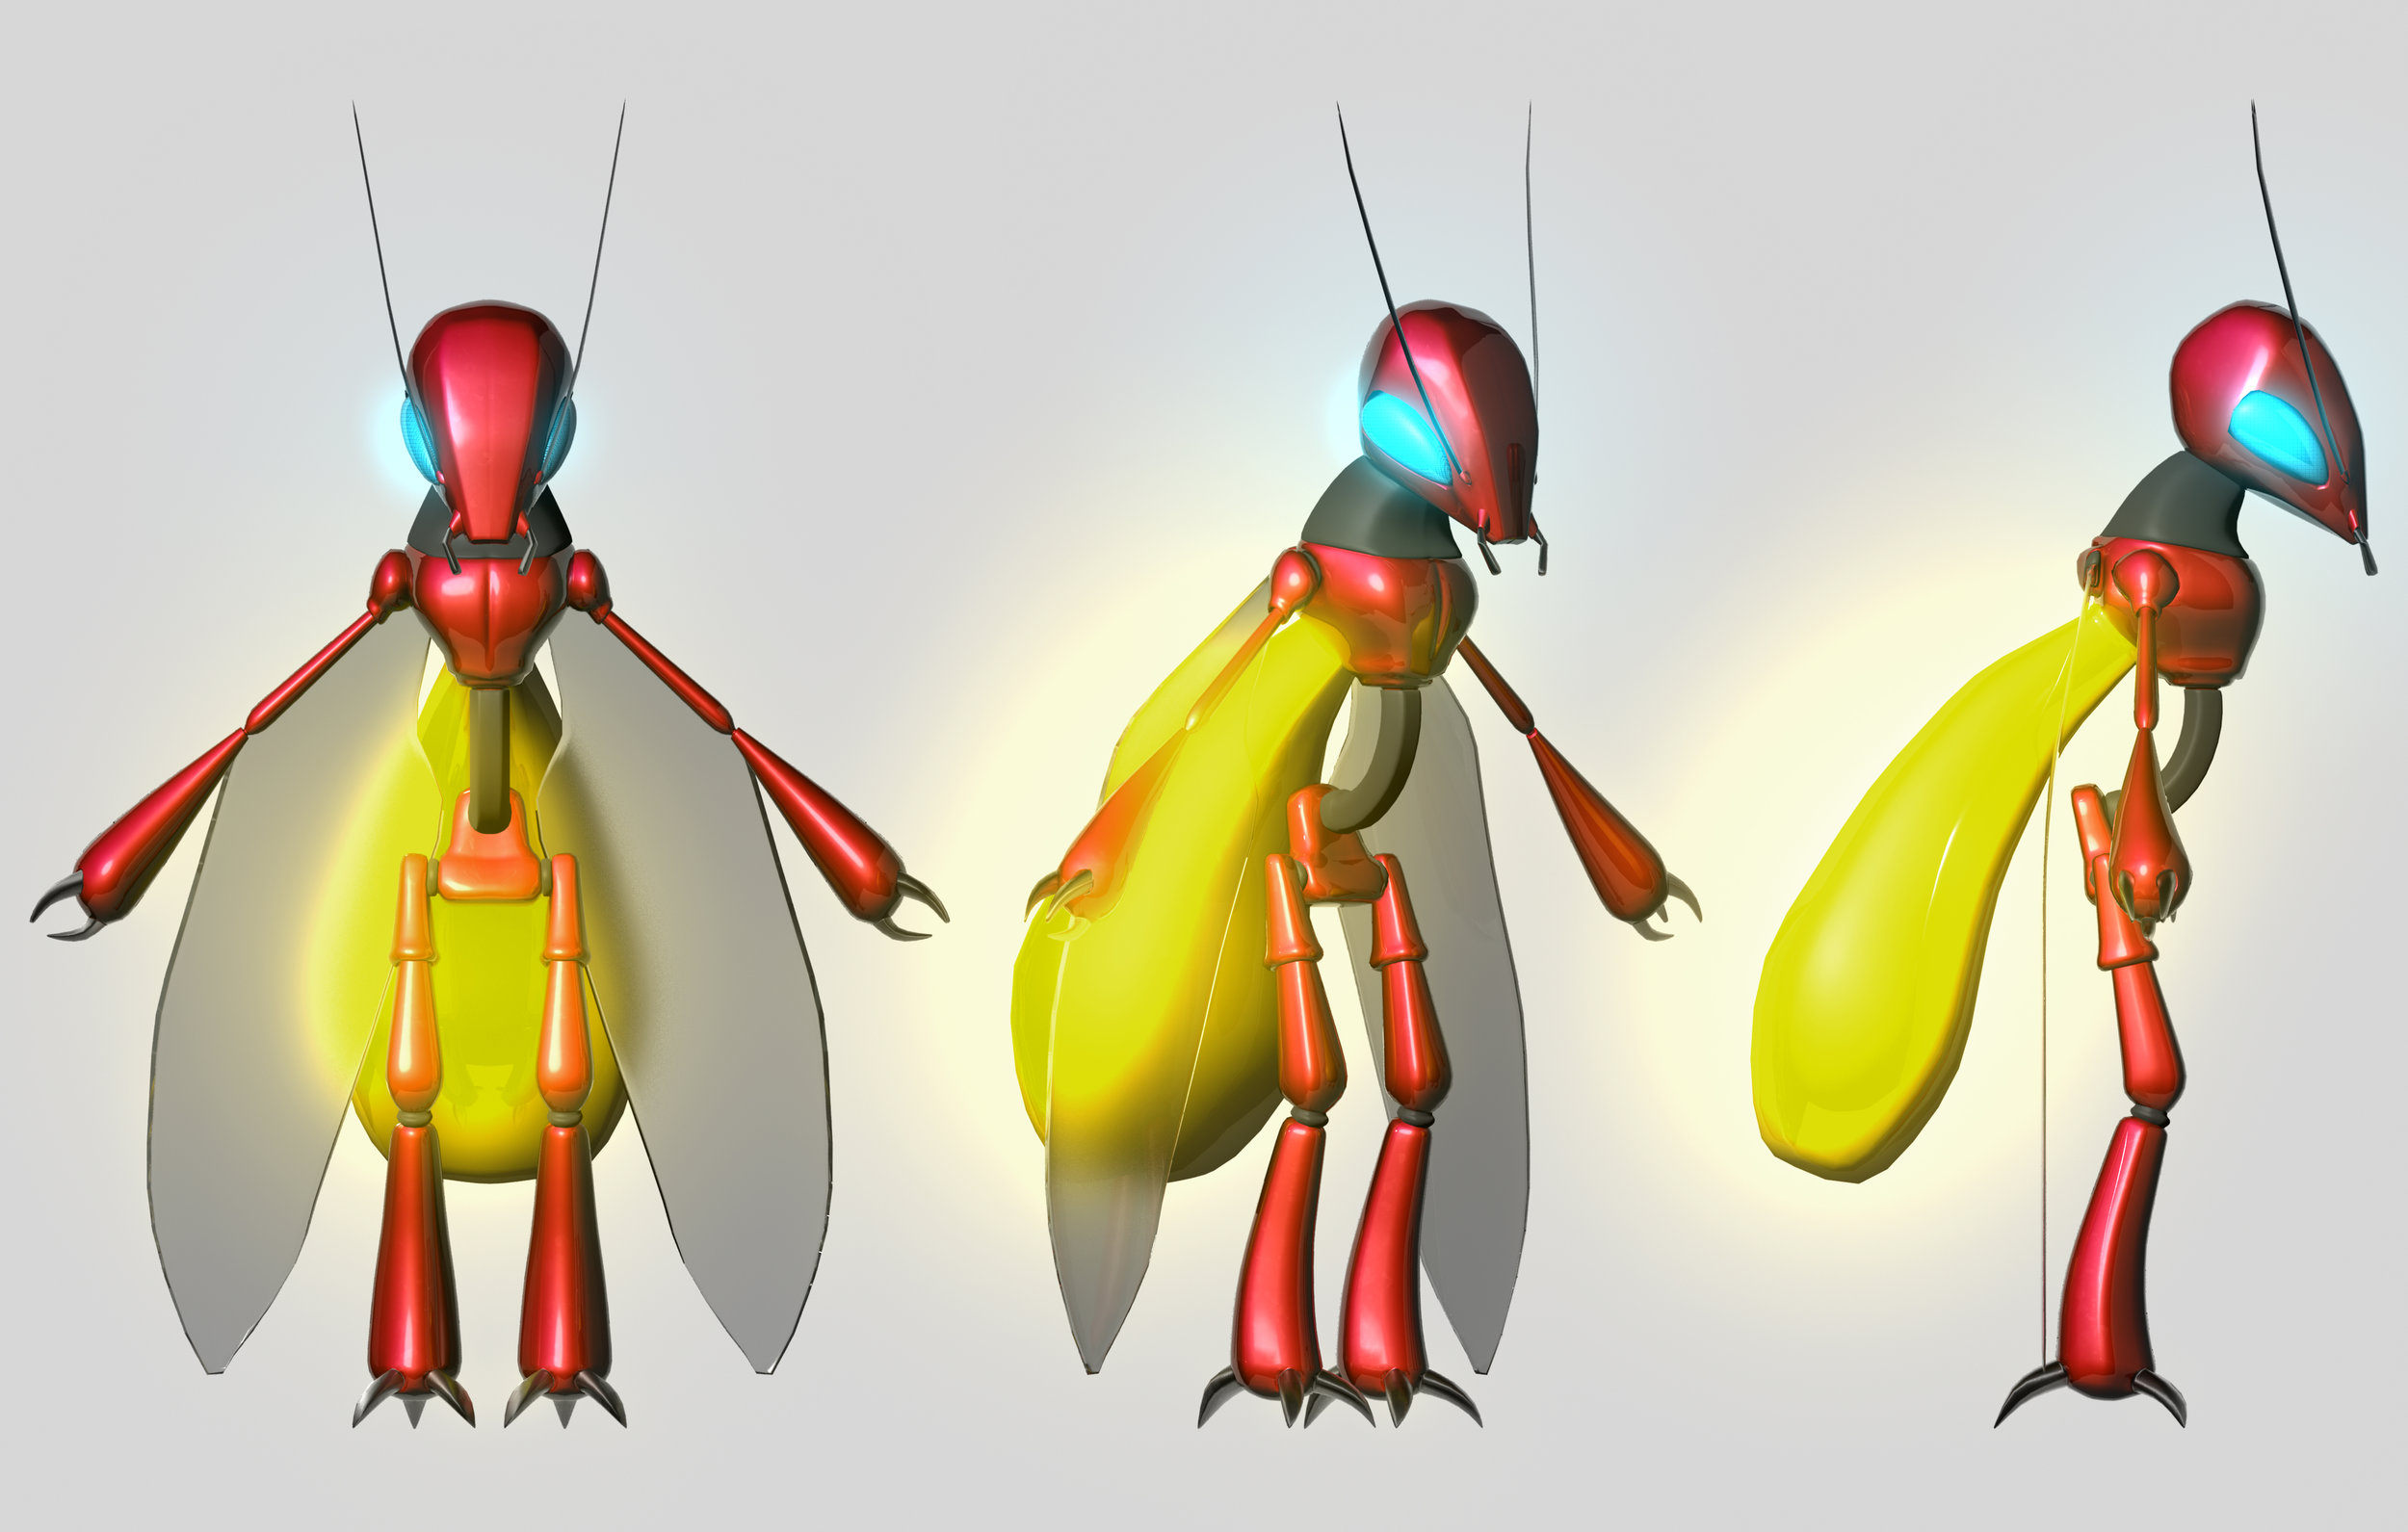 Copy of Phi the Robot Firefly